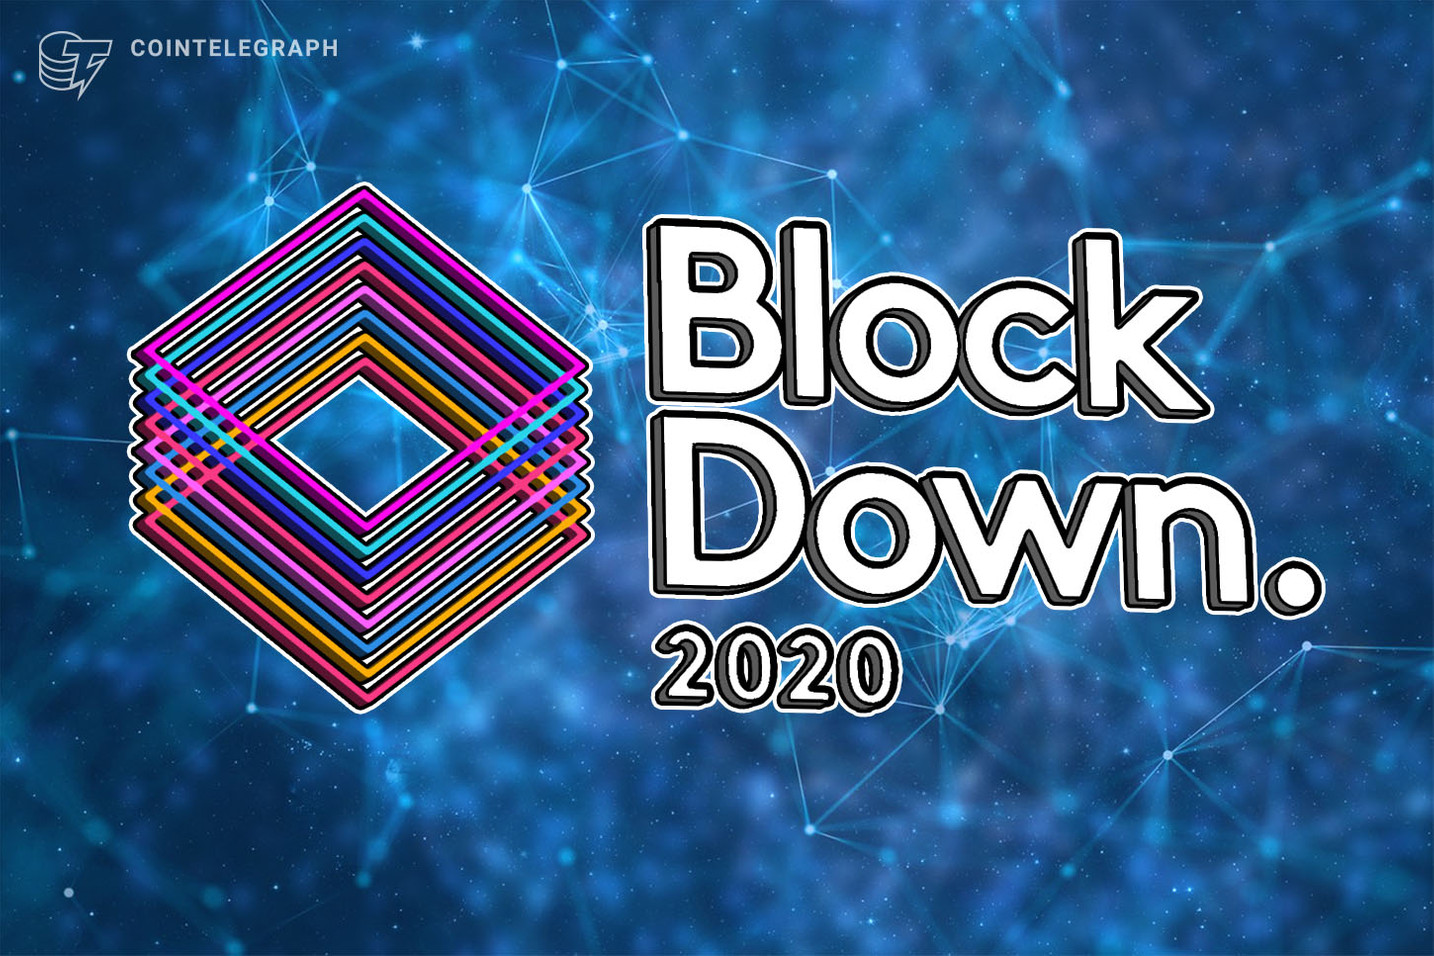 3D Conference BlockDown Back this Summer Following Successful Debut